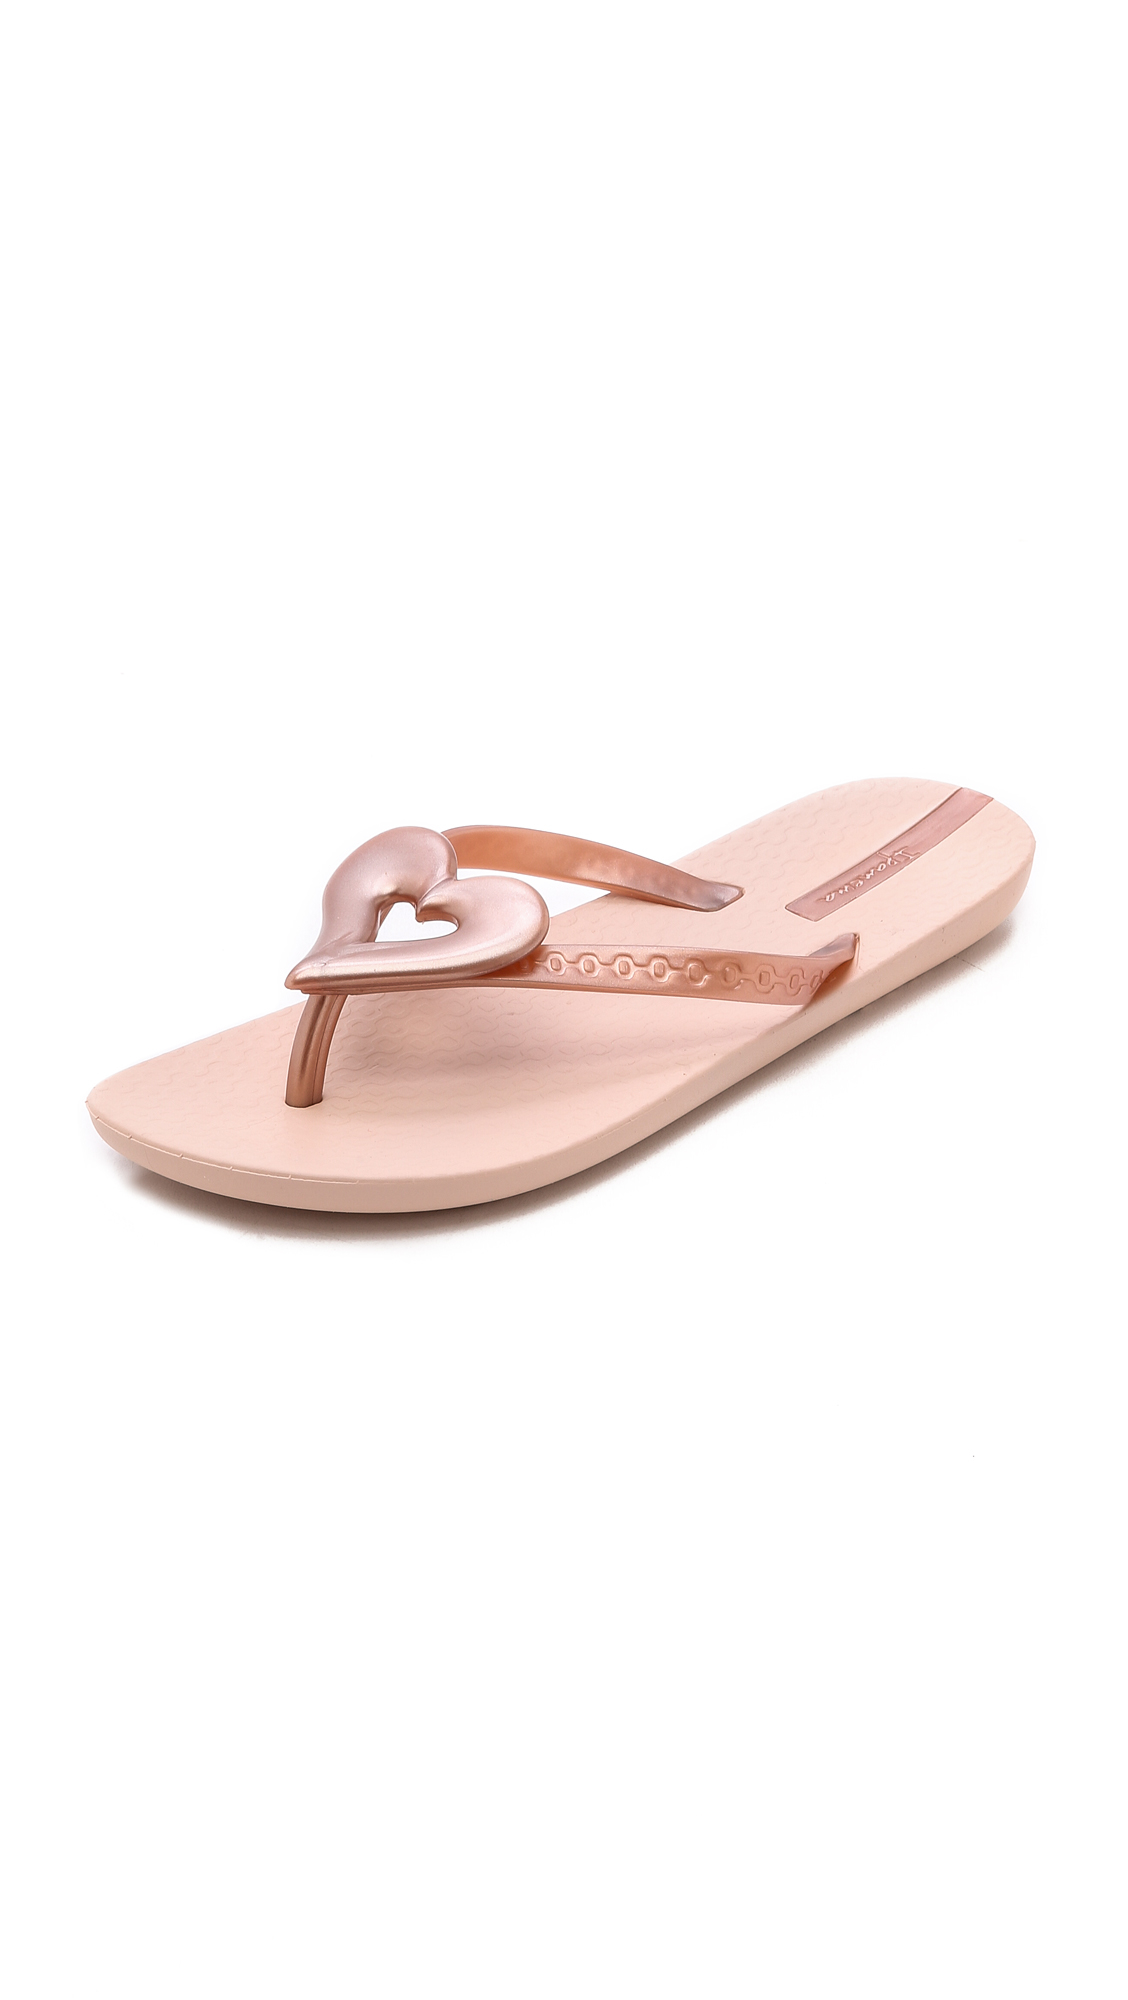 fbdb5aba933381 Ipanema Neo Love Iii Heart Flip Flops - Rose Gold in Pink - Lyst